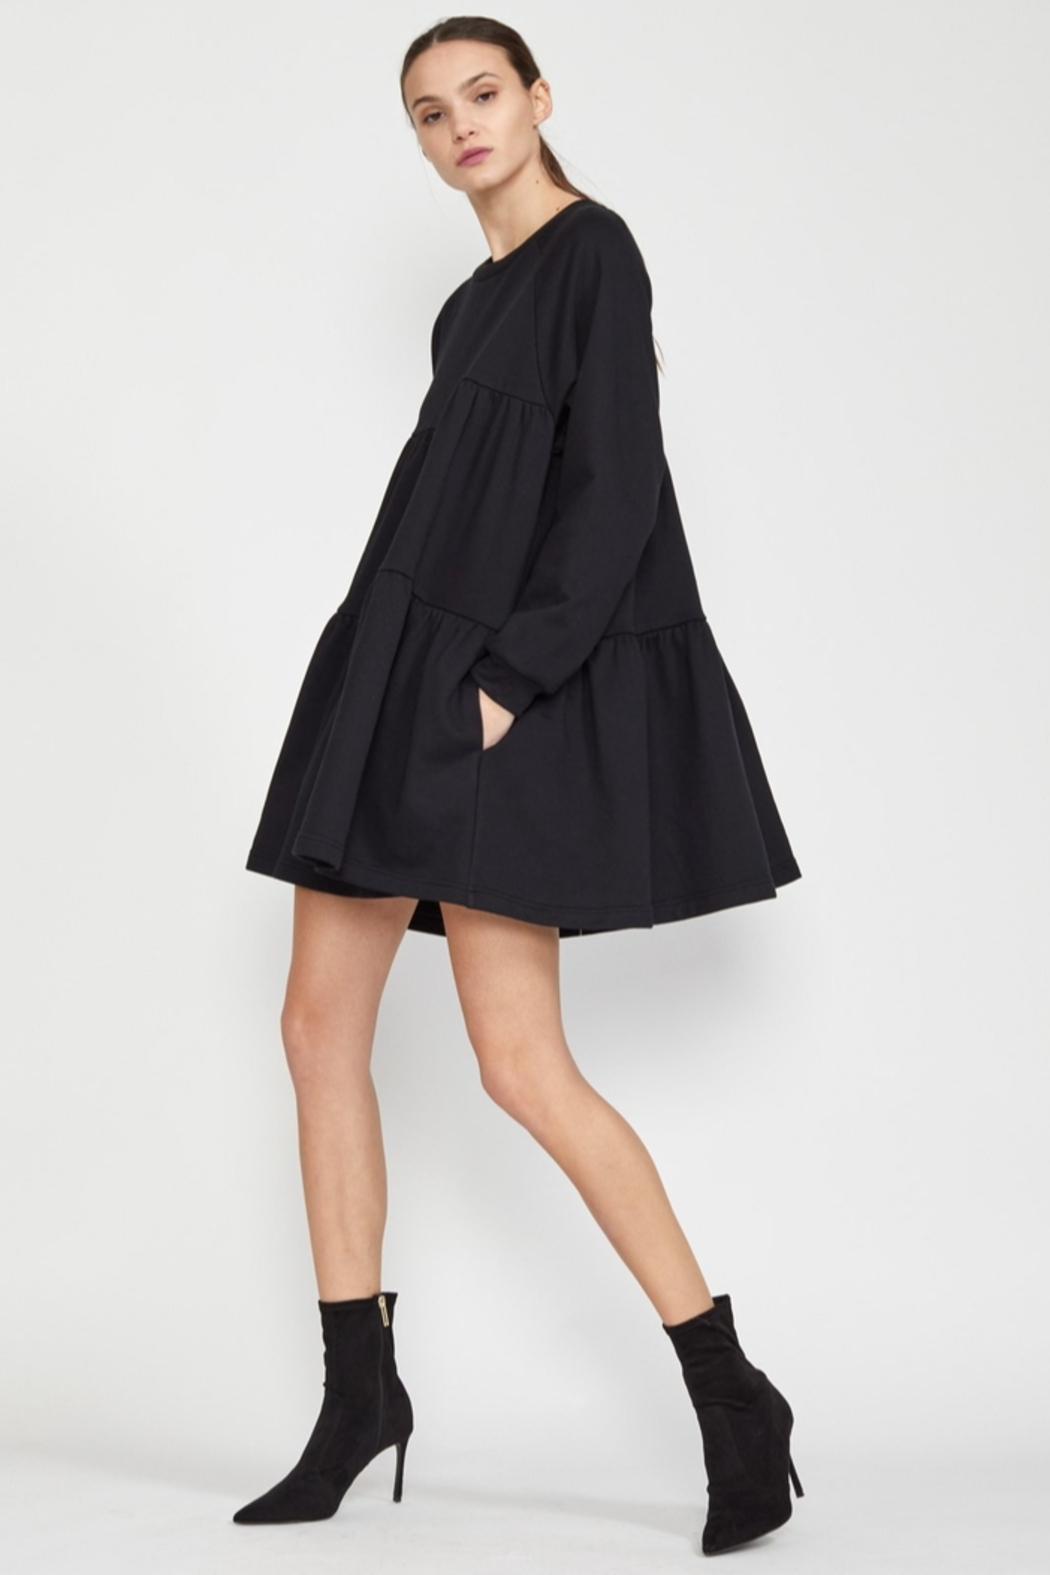 Cynthia Rowley Vail Cozy Swing Dress - Side Cropped Image